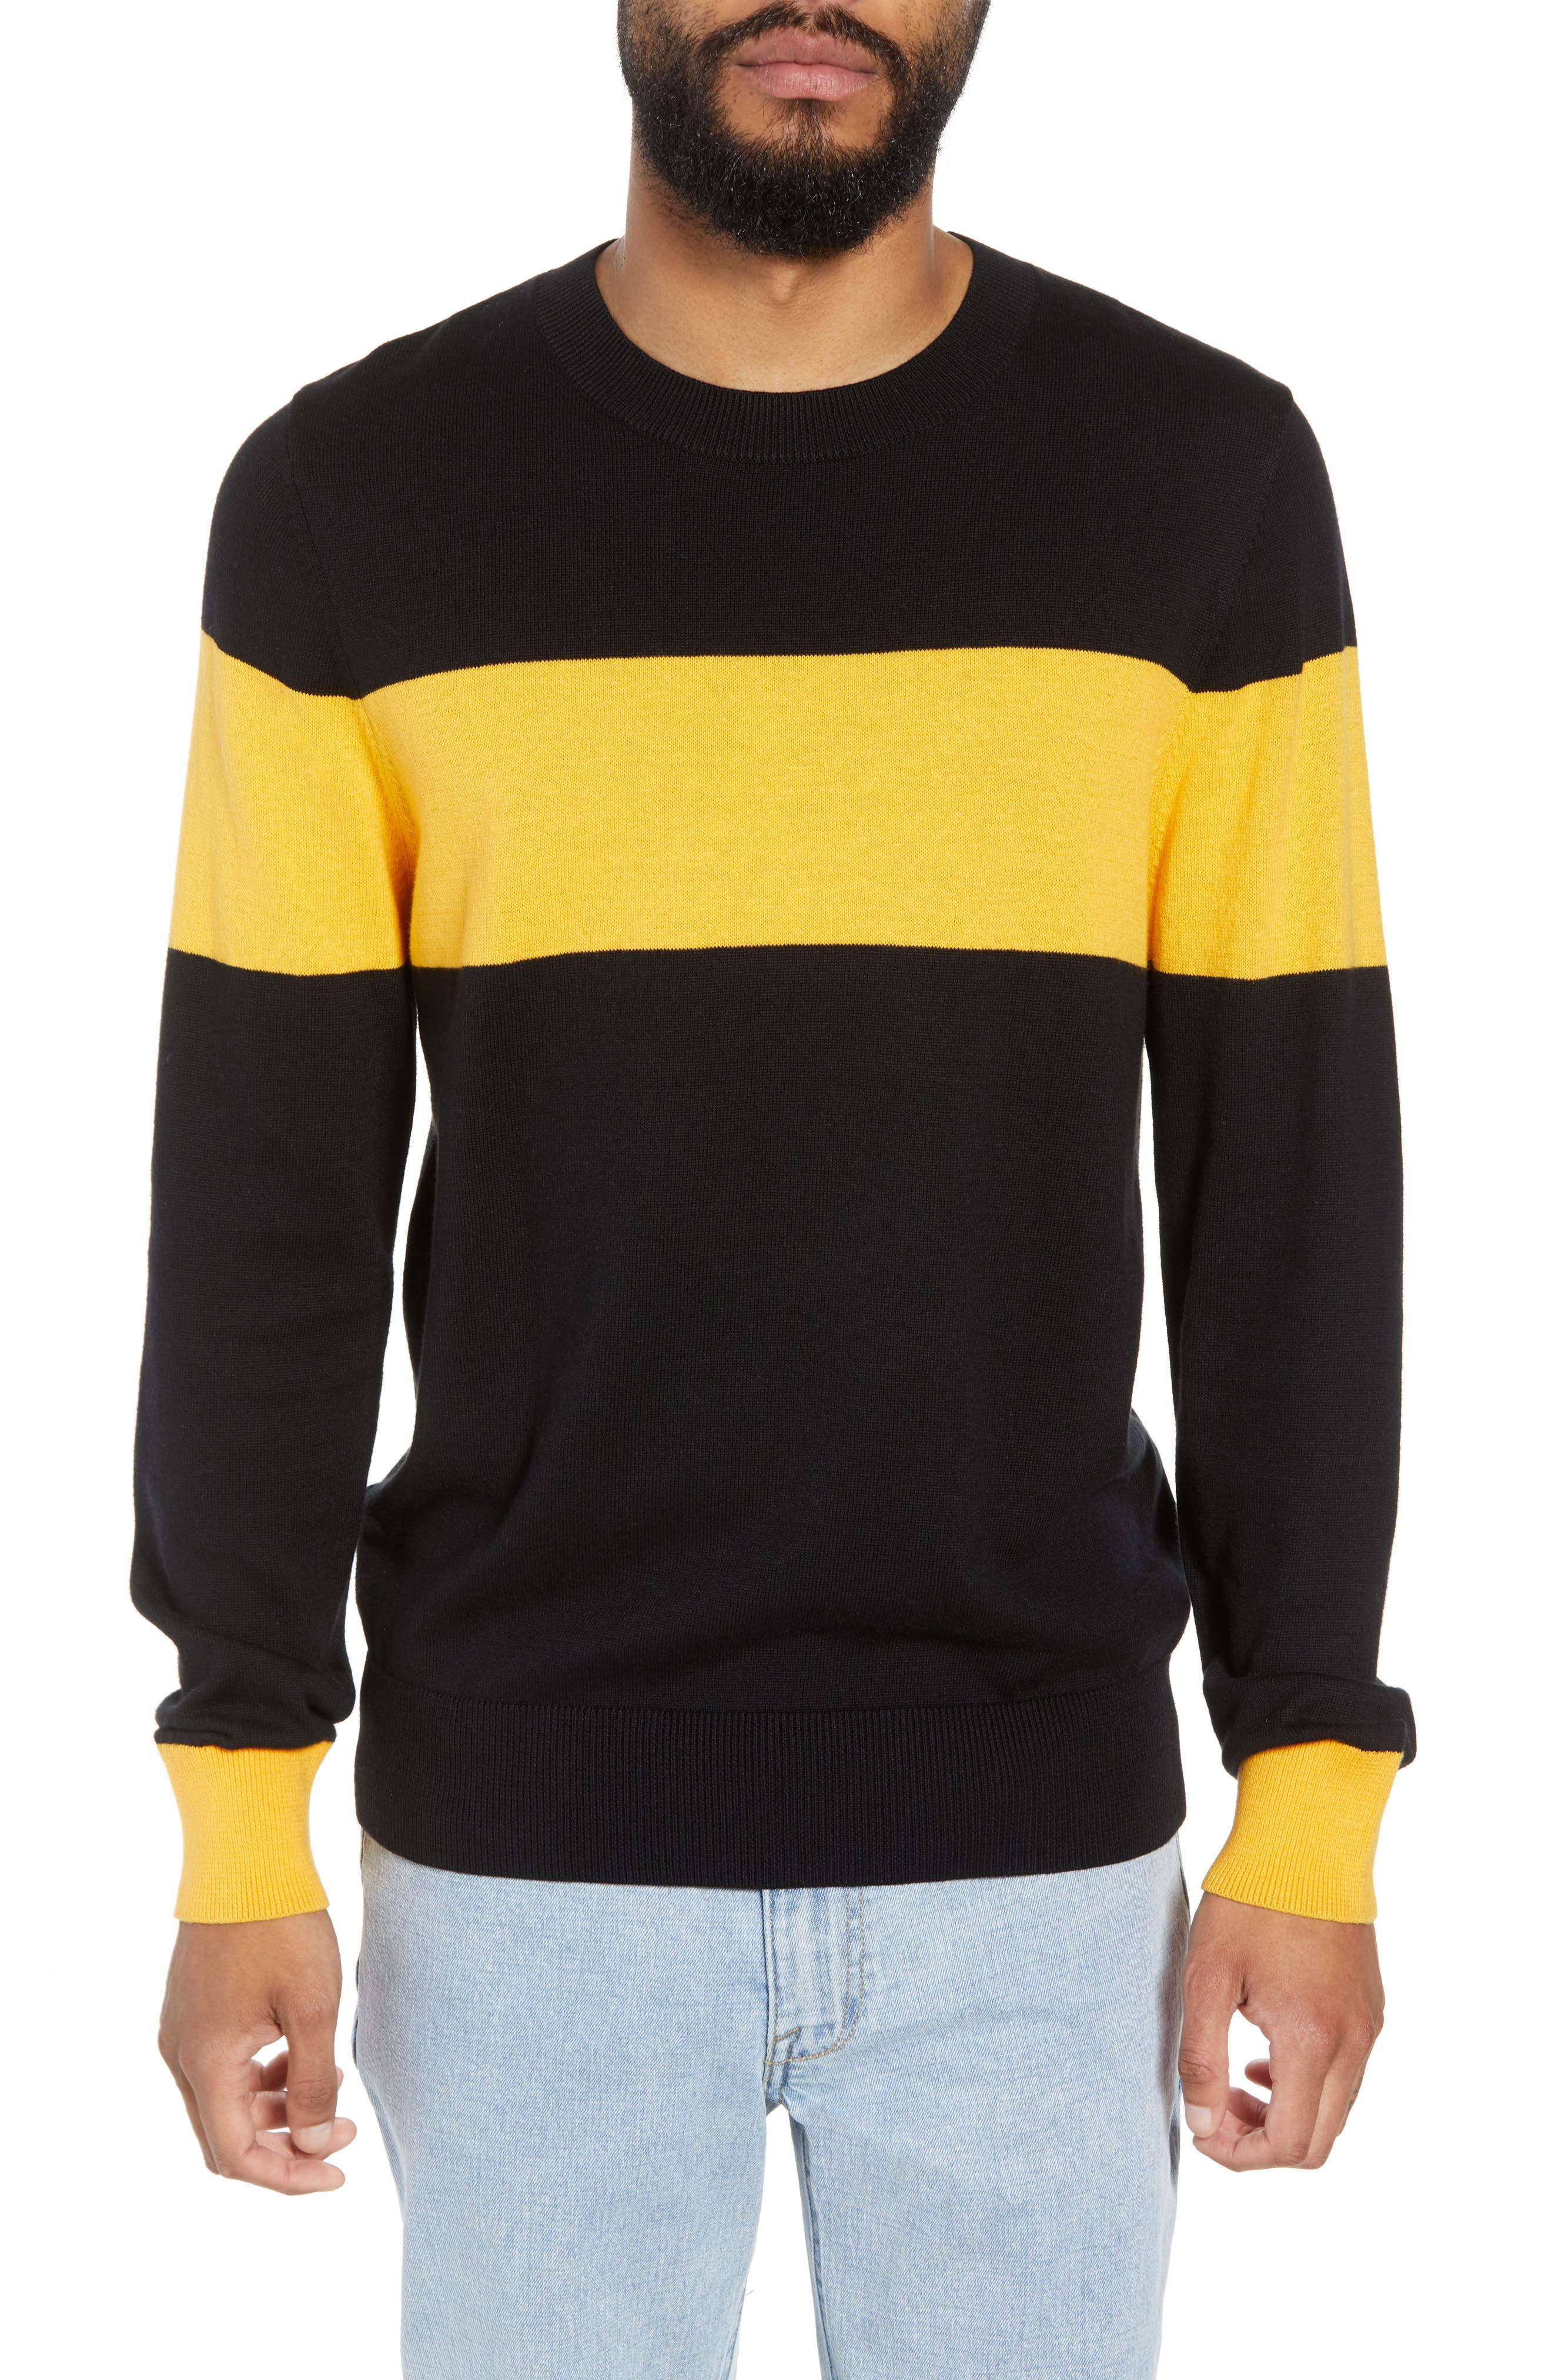 Rugby Stripe Sweater,                             Main thumbnail 1, color,                             BLACK YELLOW RUGBY STRIPE